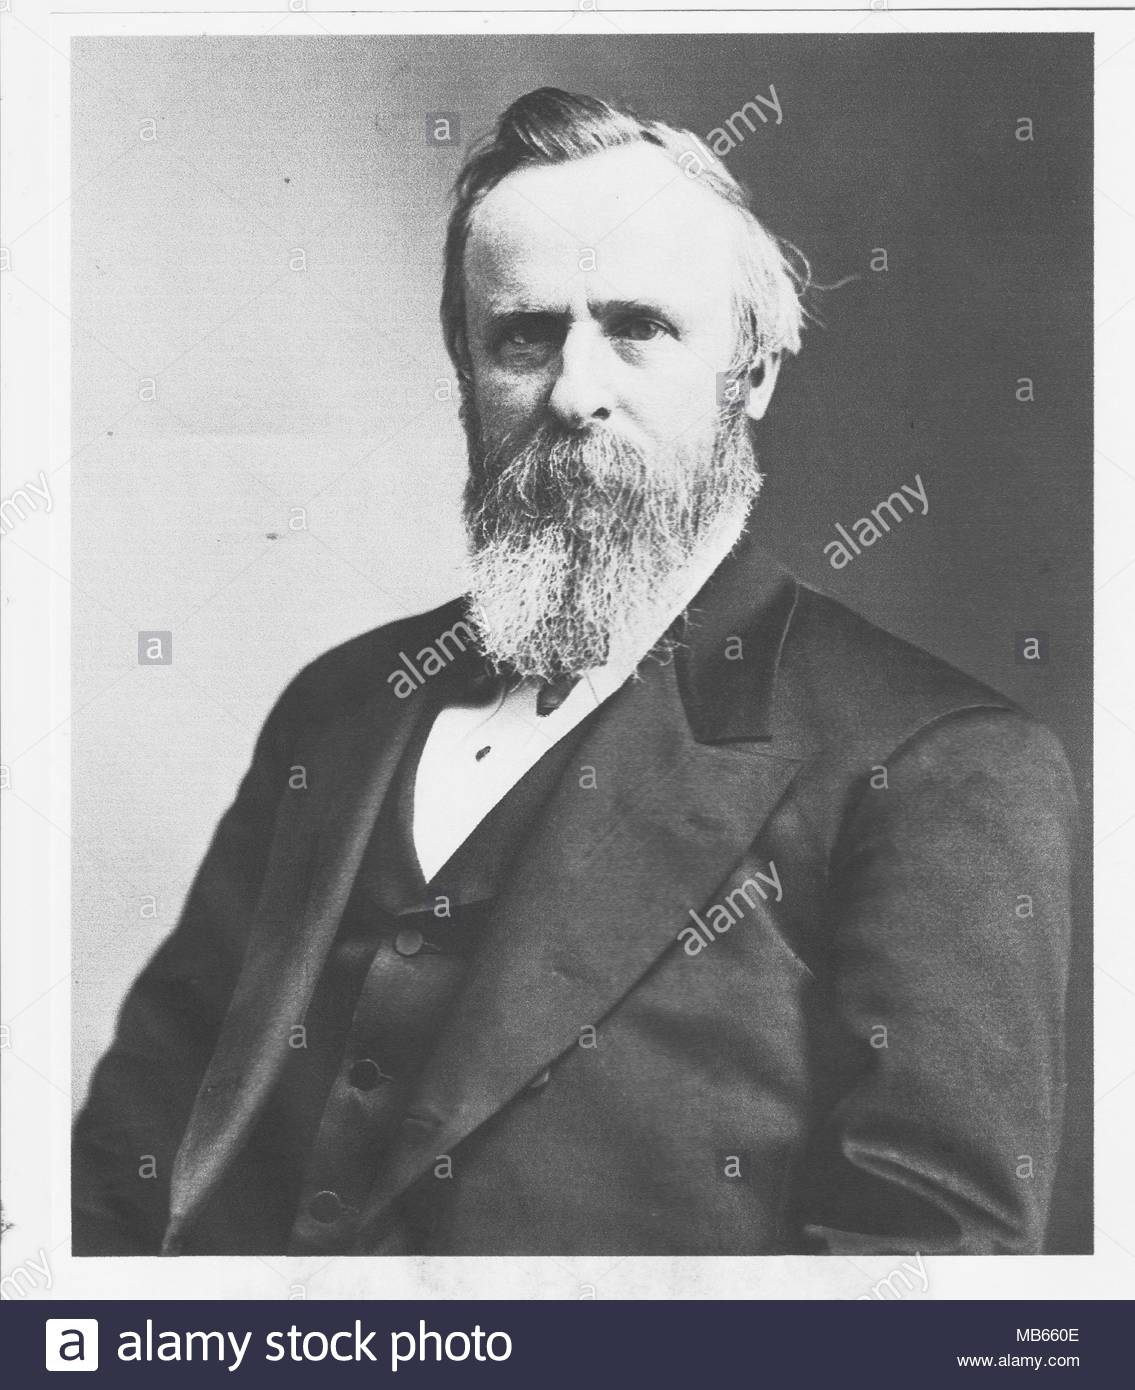 hayes tilden compromise of 1877